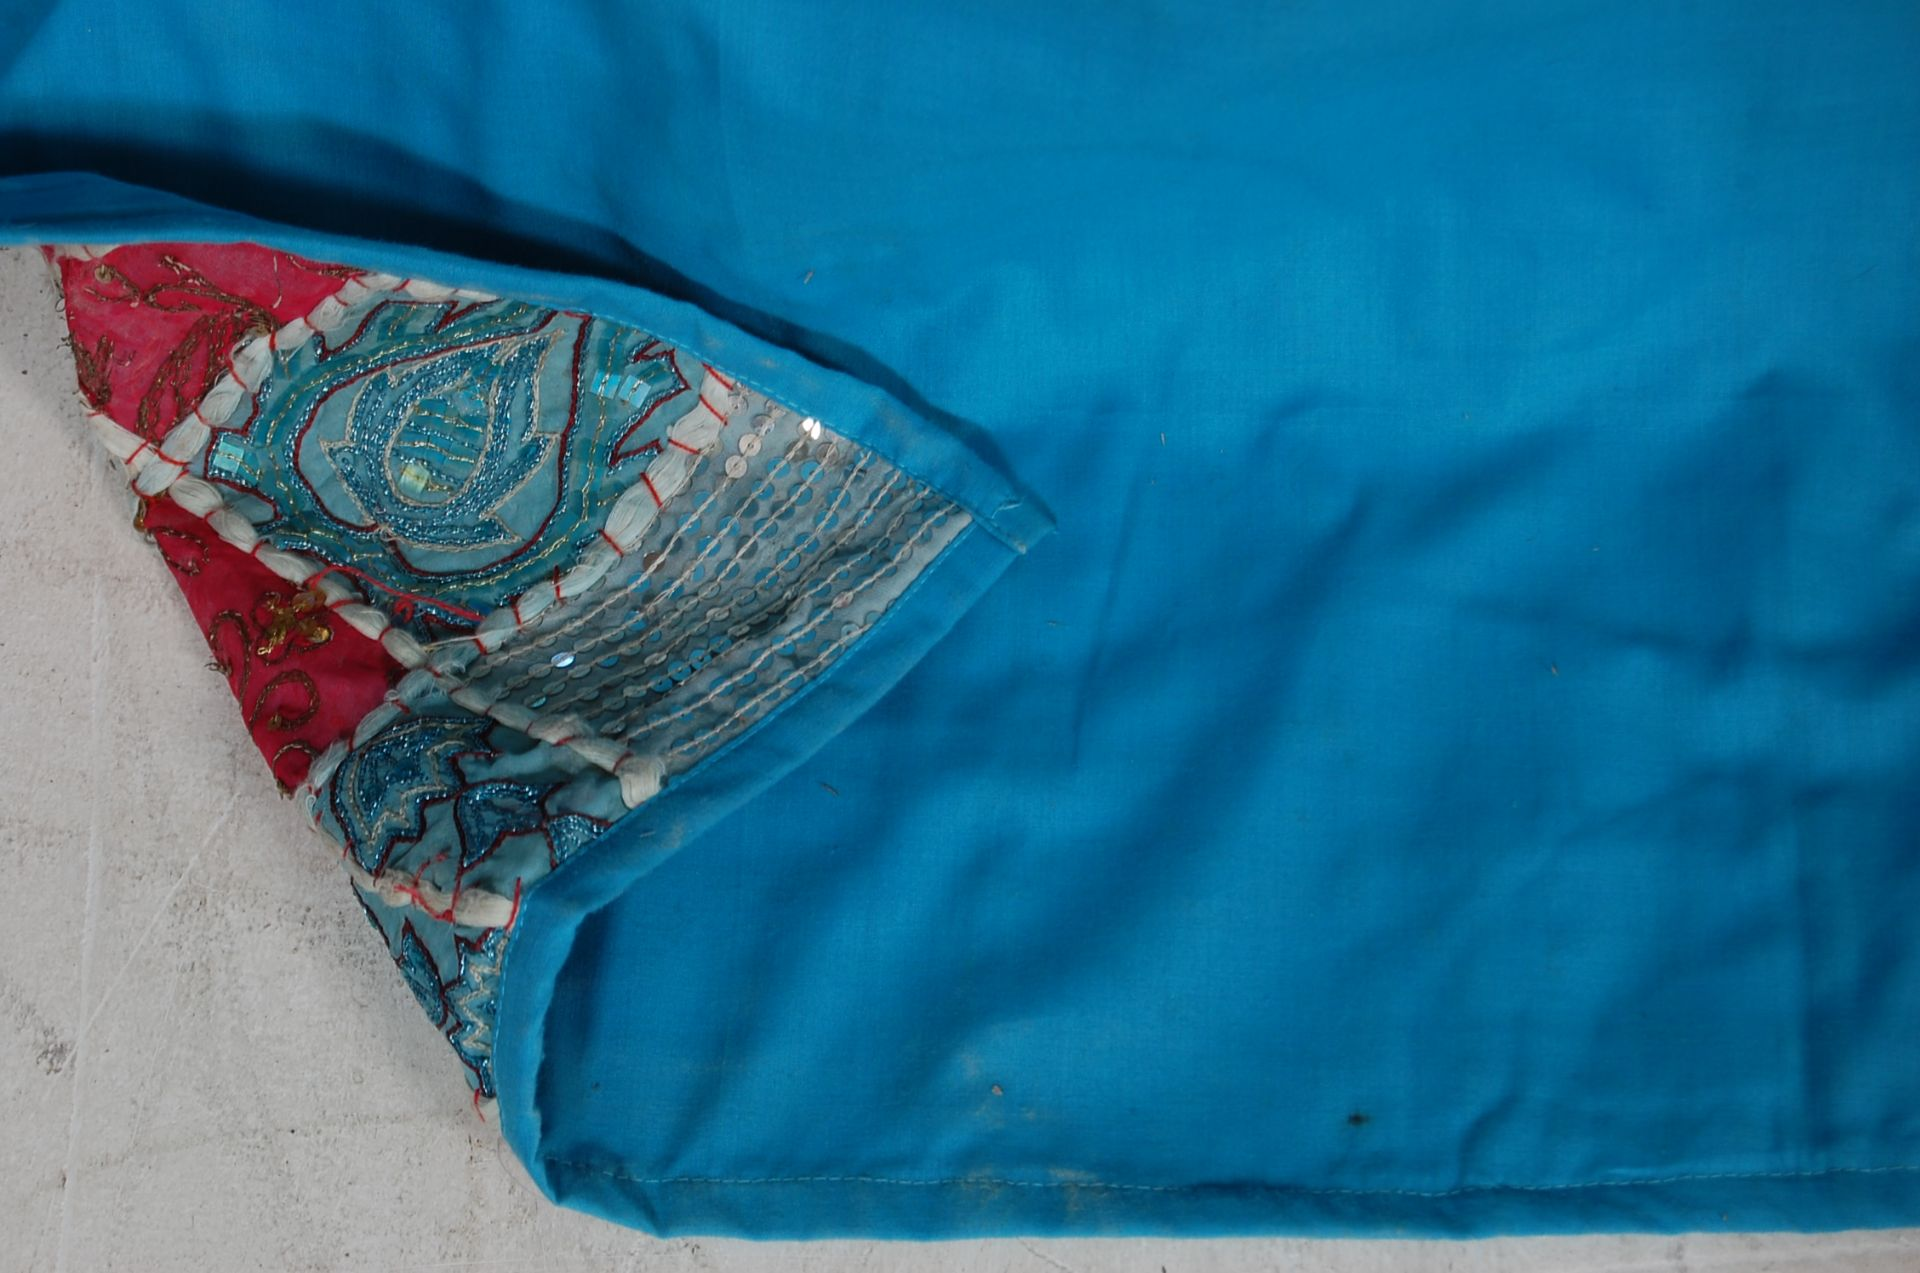 20TH CENTURY ANTIQUE STYLE TRADITIONAL PAKISTANI / RAJASTHANI / INDIAN PATCHWORK QUILT BED THROW - Image 11 of 11